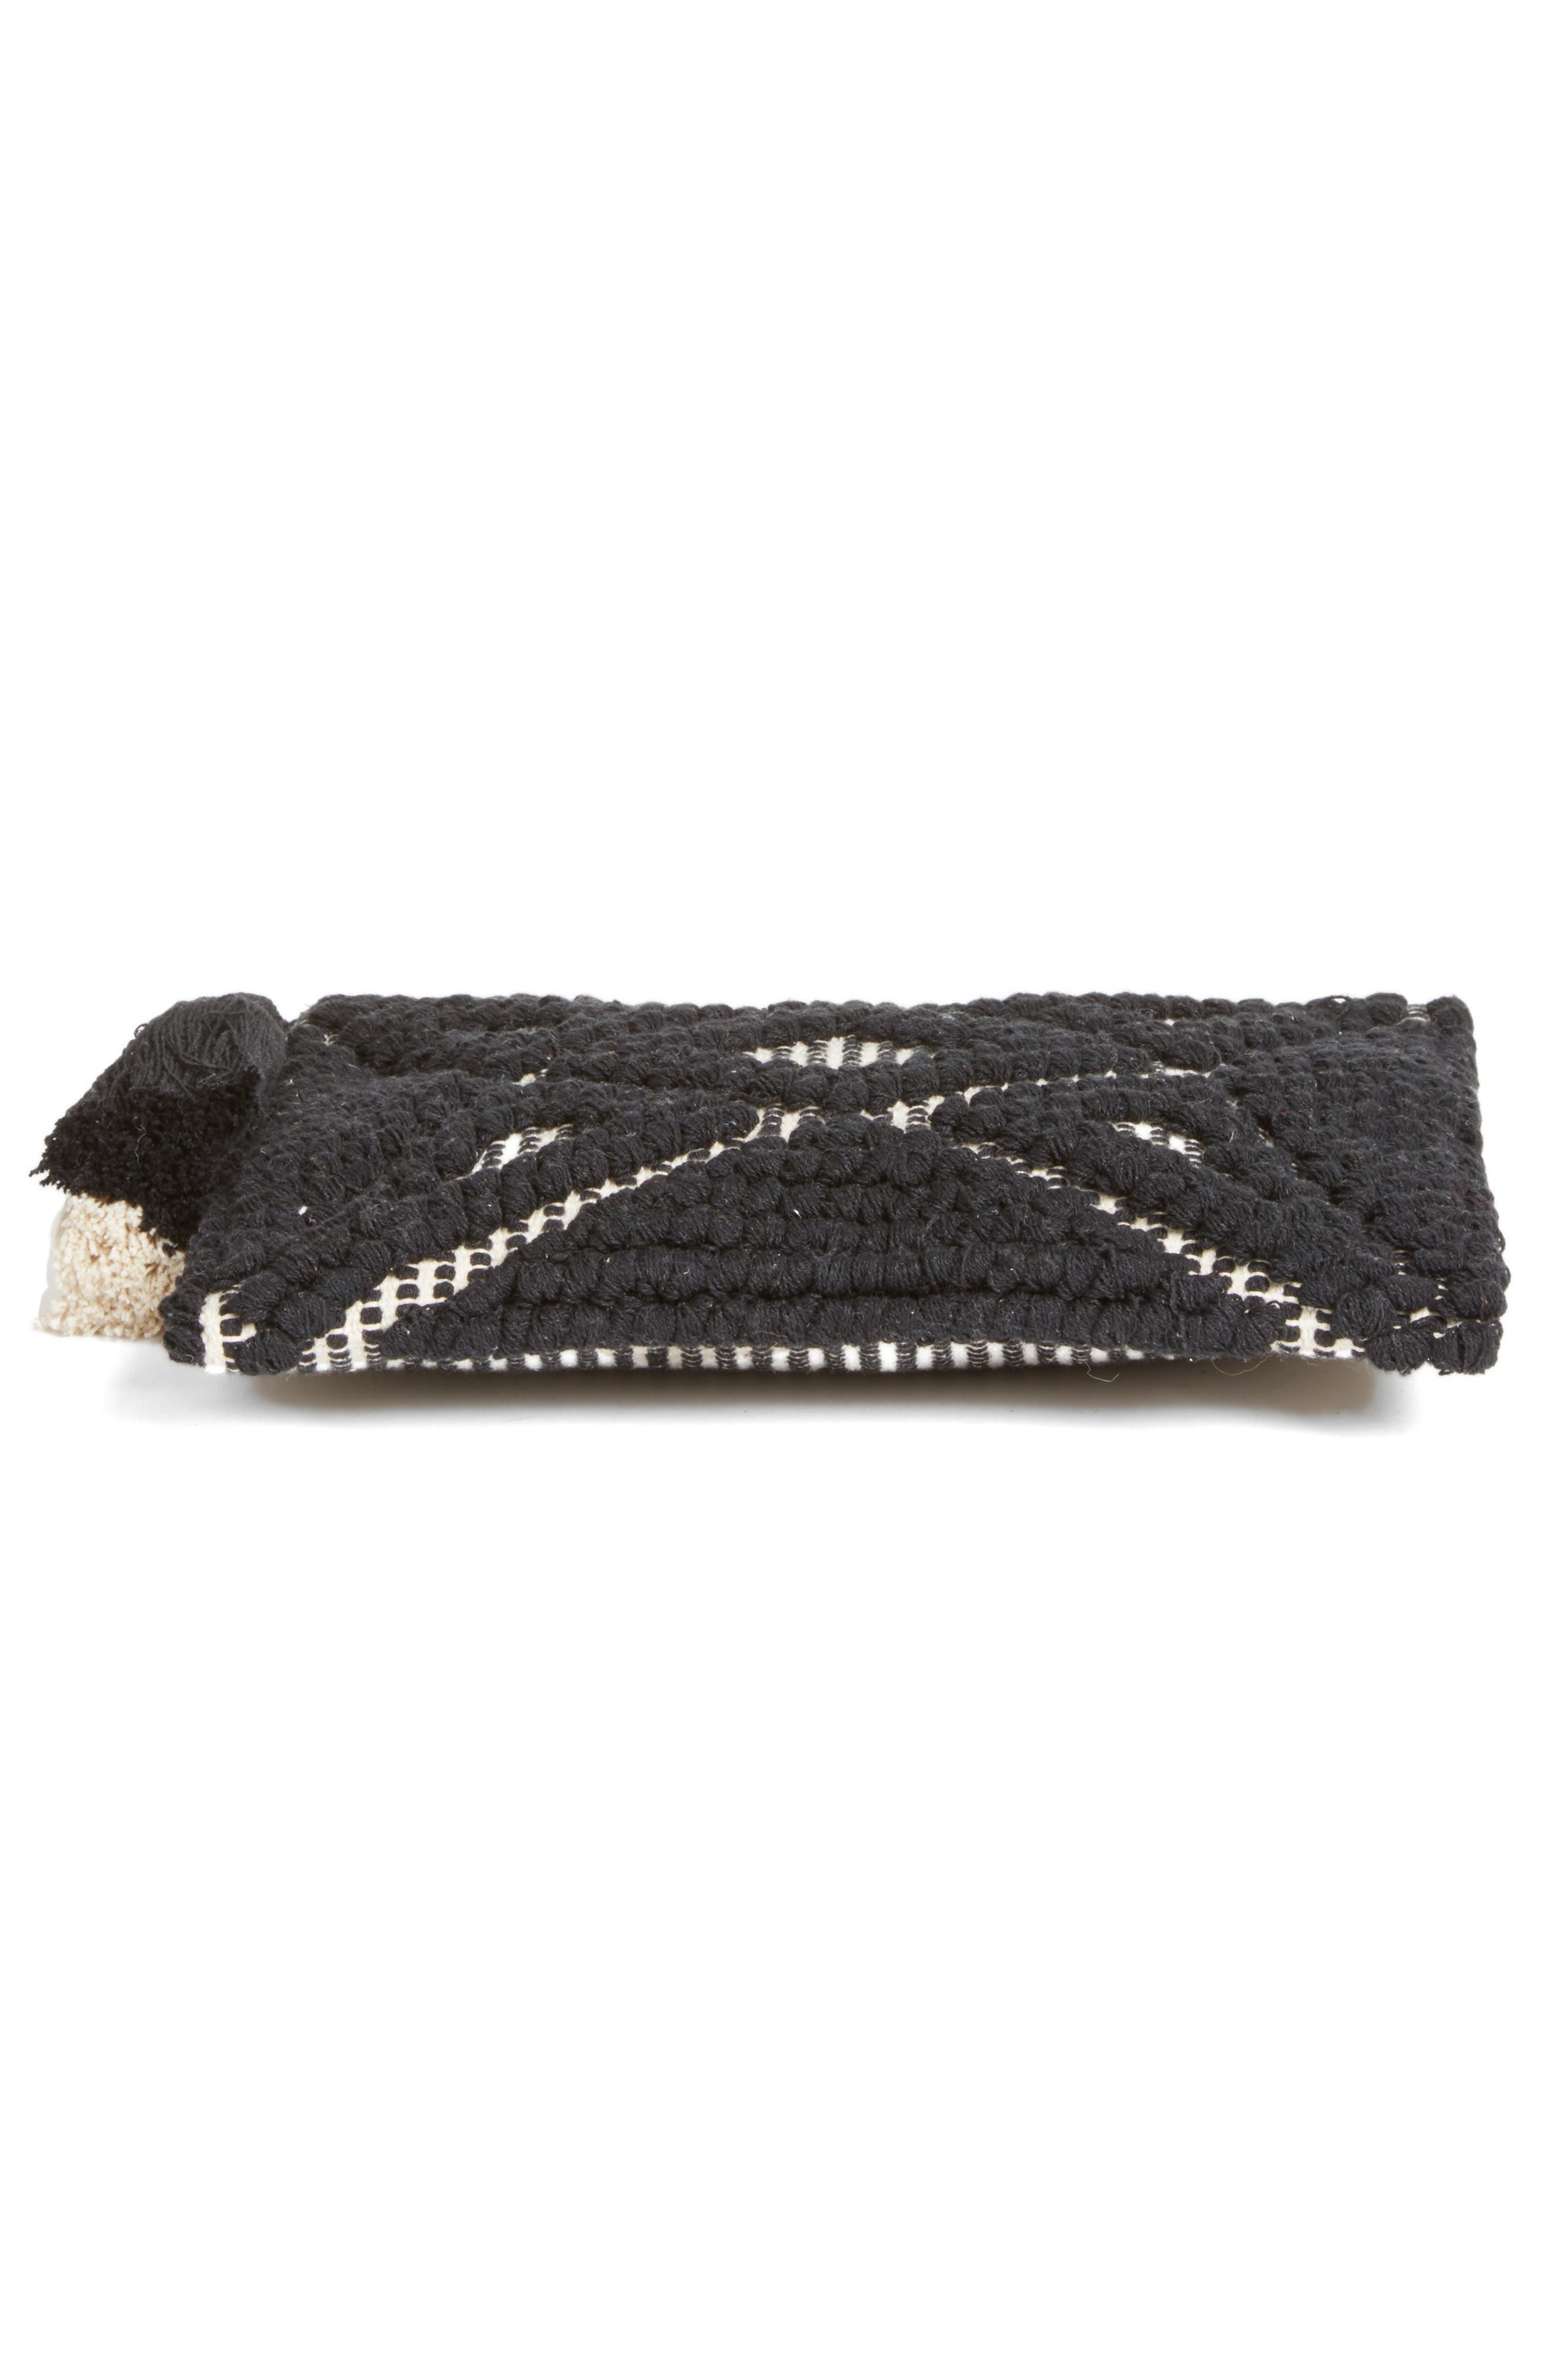 Palisades Tasseled Woven Clutch,                             Alternate thumbnail 31, color,